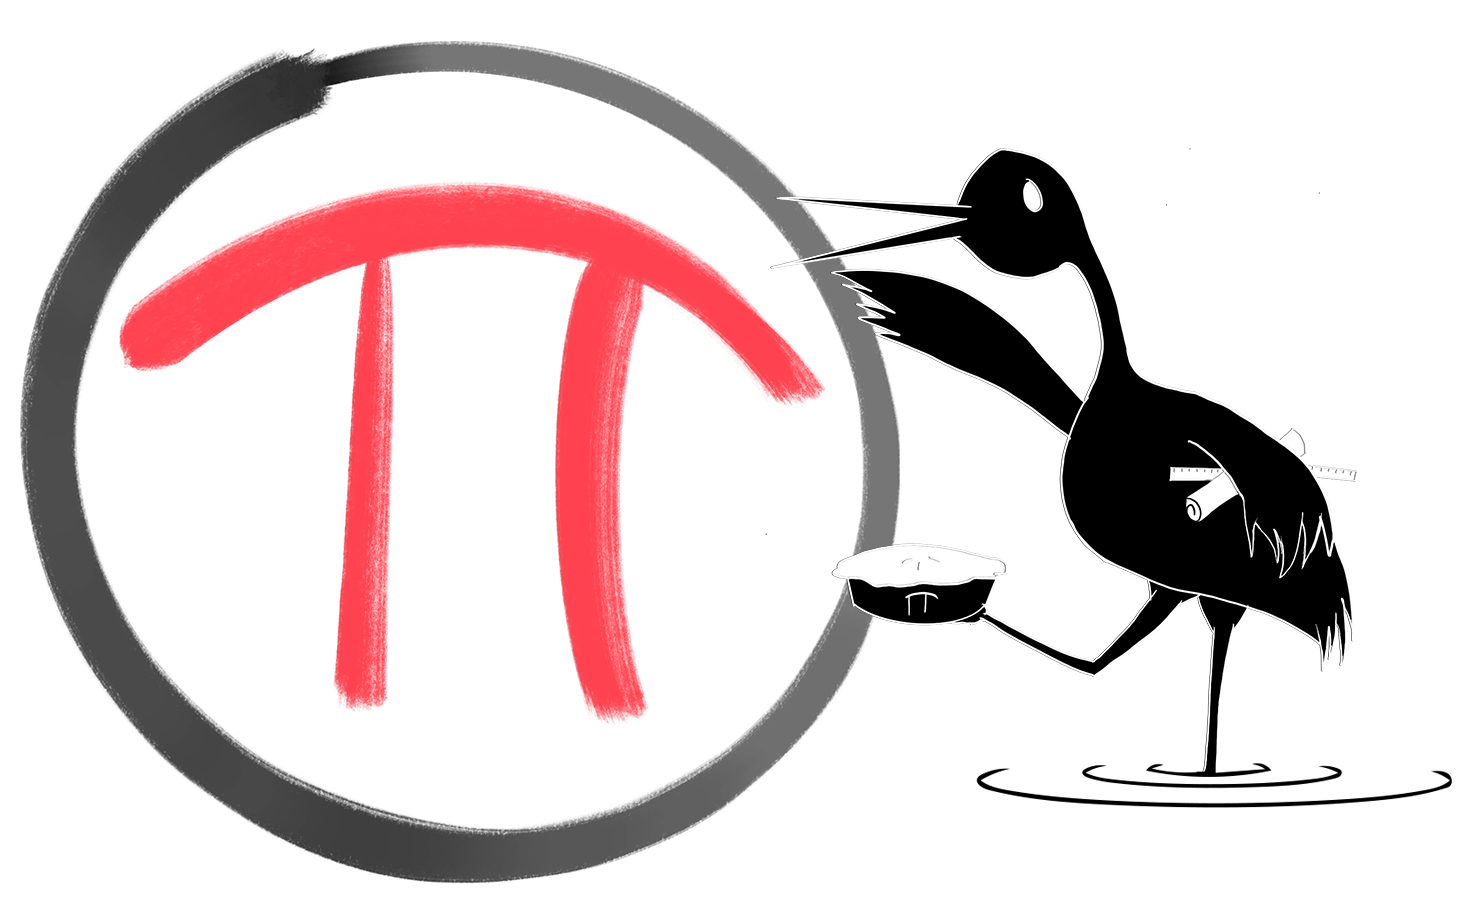 A crane drawn in black ink with a ruler and rolled up piece of paper tucked under one wing, and holding up a pie with one foot. He is waving with his other wing. Behind him is a Pi symbol in a circle.